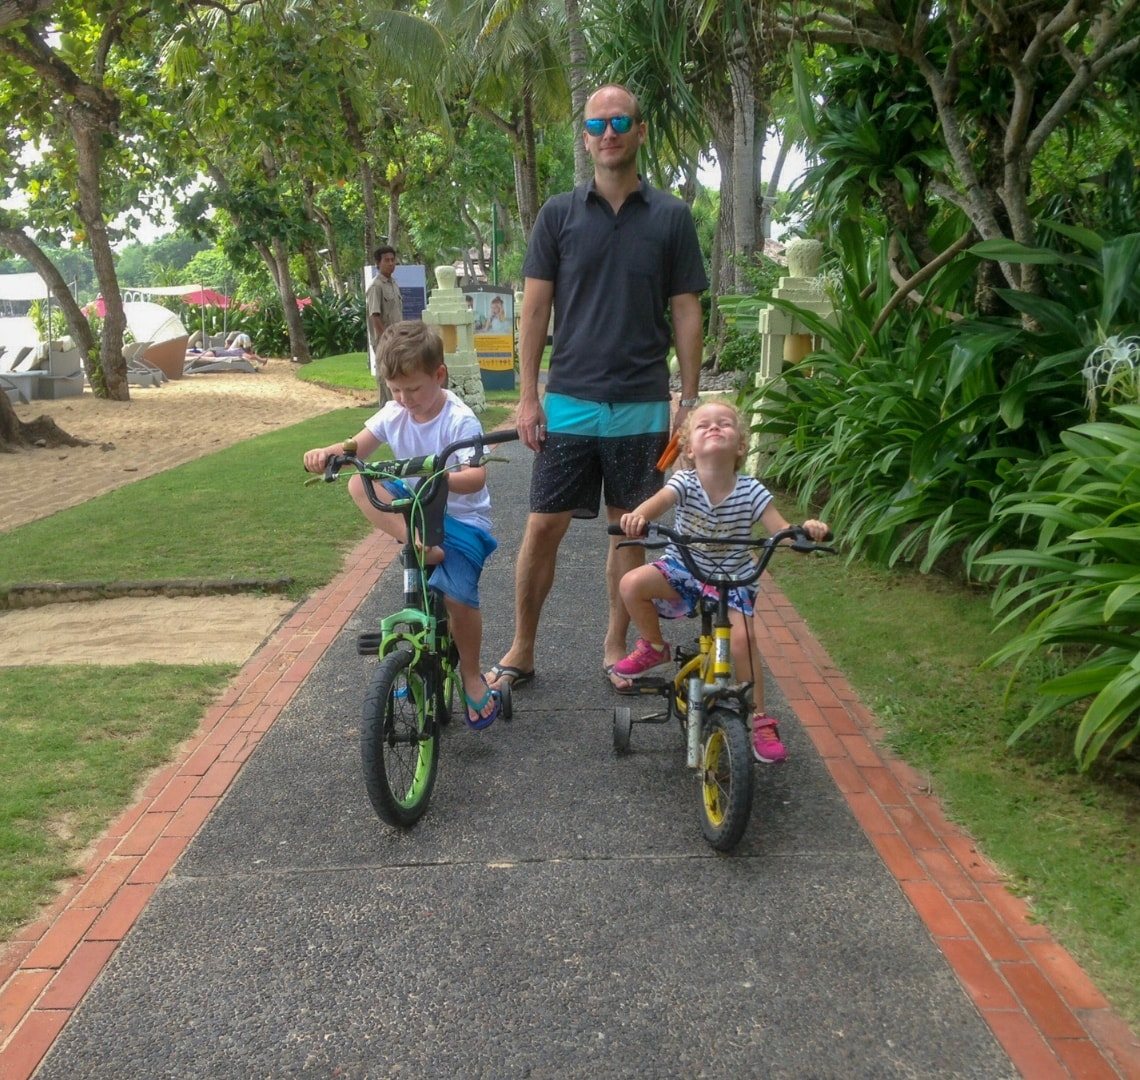 Nusa Dua - Mr Wanderlsut with the Things on bikes